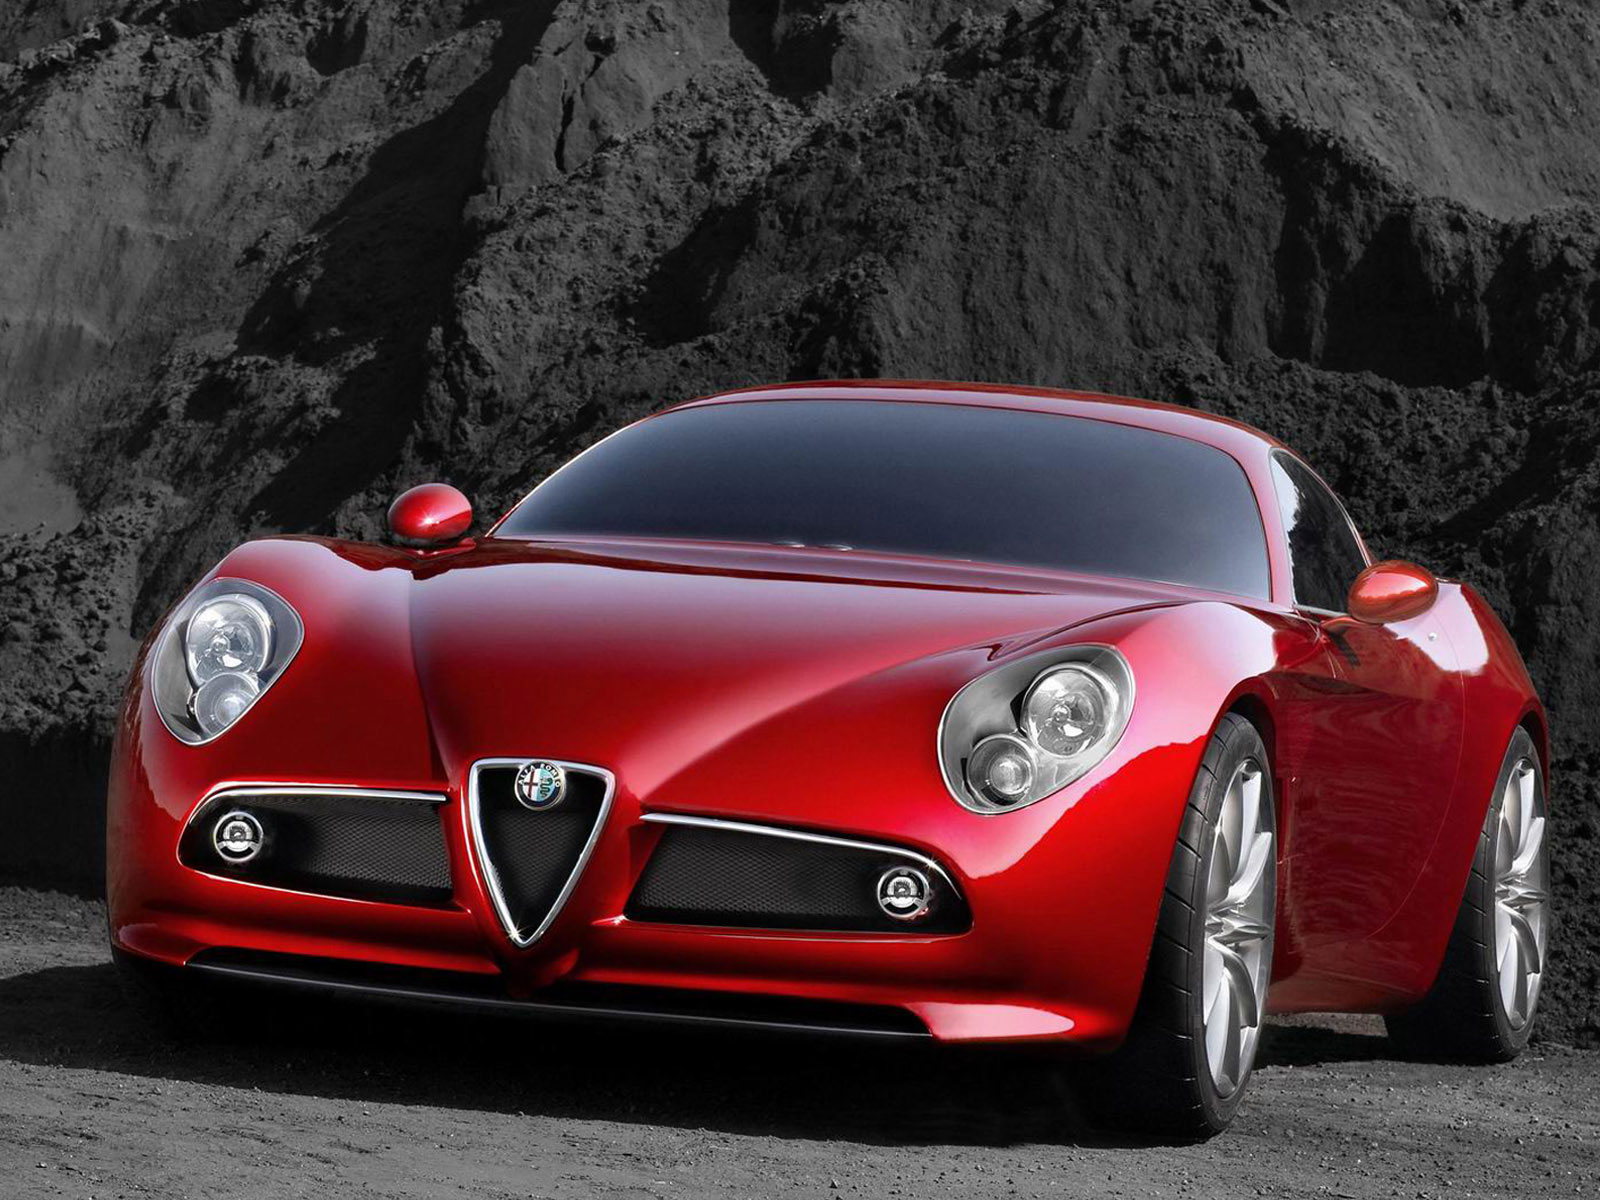 search for alfa romeo 8c competizione 2003 on. Cars Review. Best American Auto & Cars Review